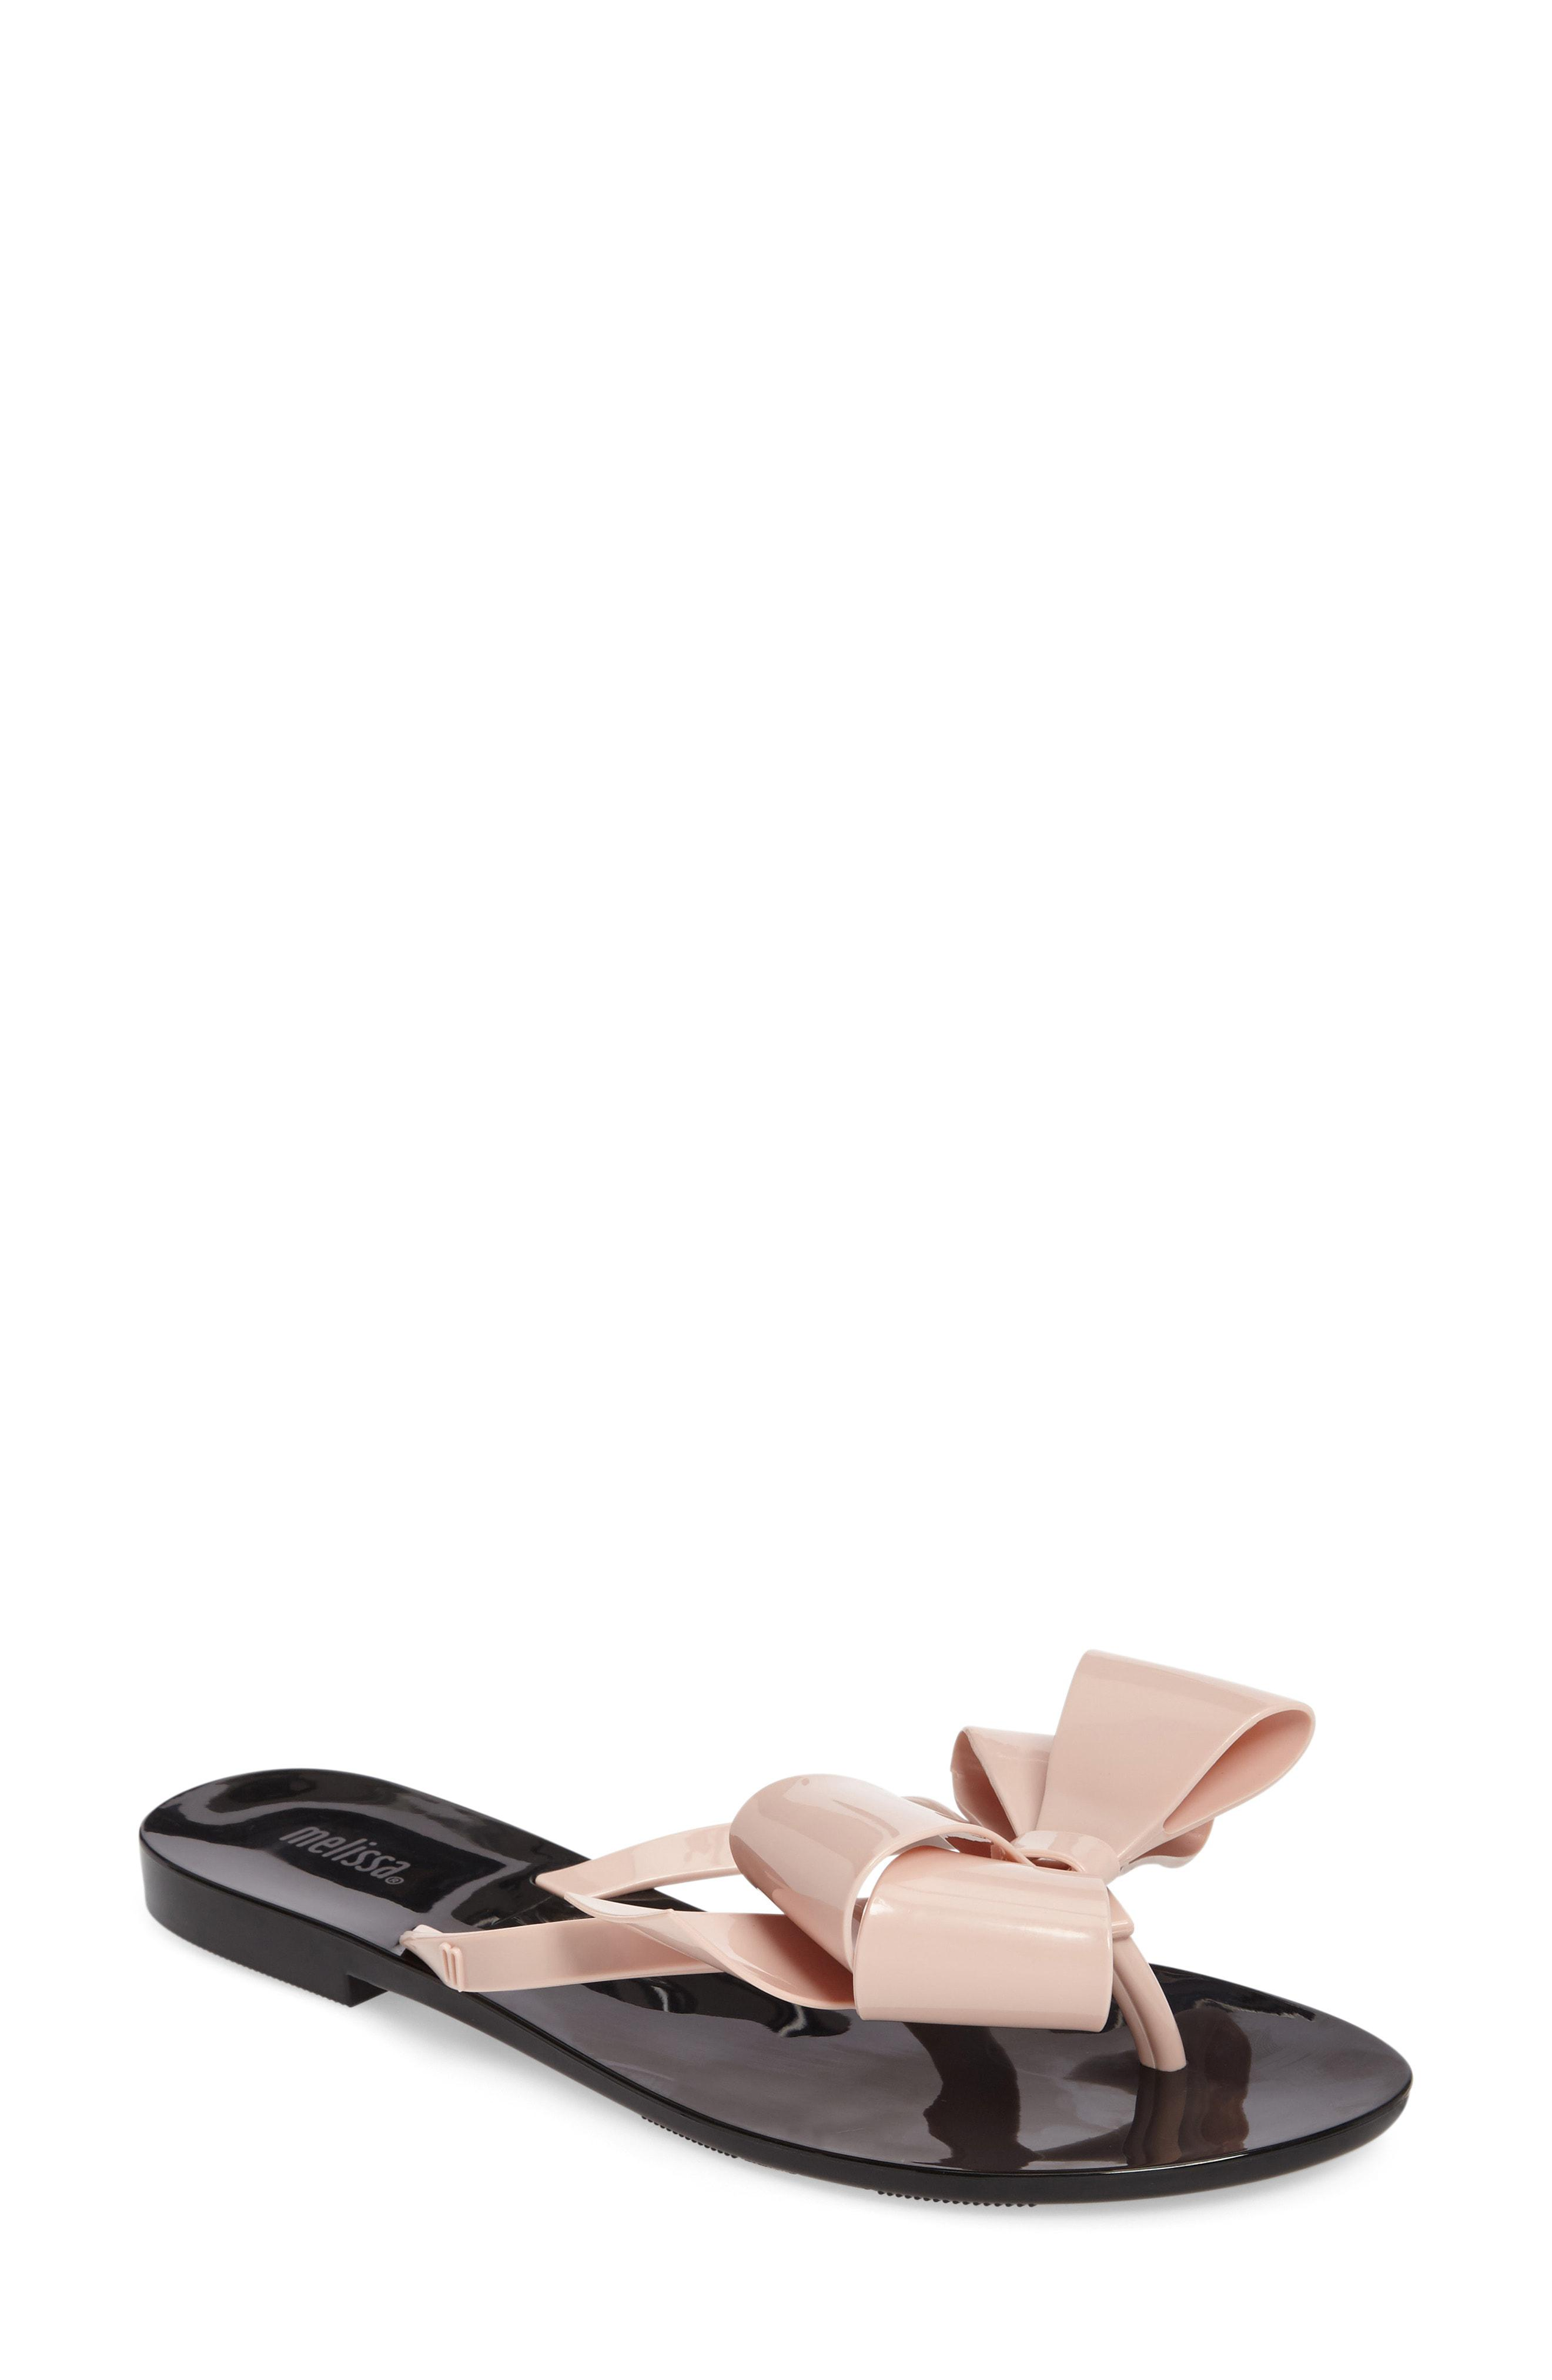 5f8bea1c6 Lyst - Melissa Harmonic Bow Iii Flip-flops in Pink - Save ...